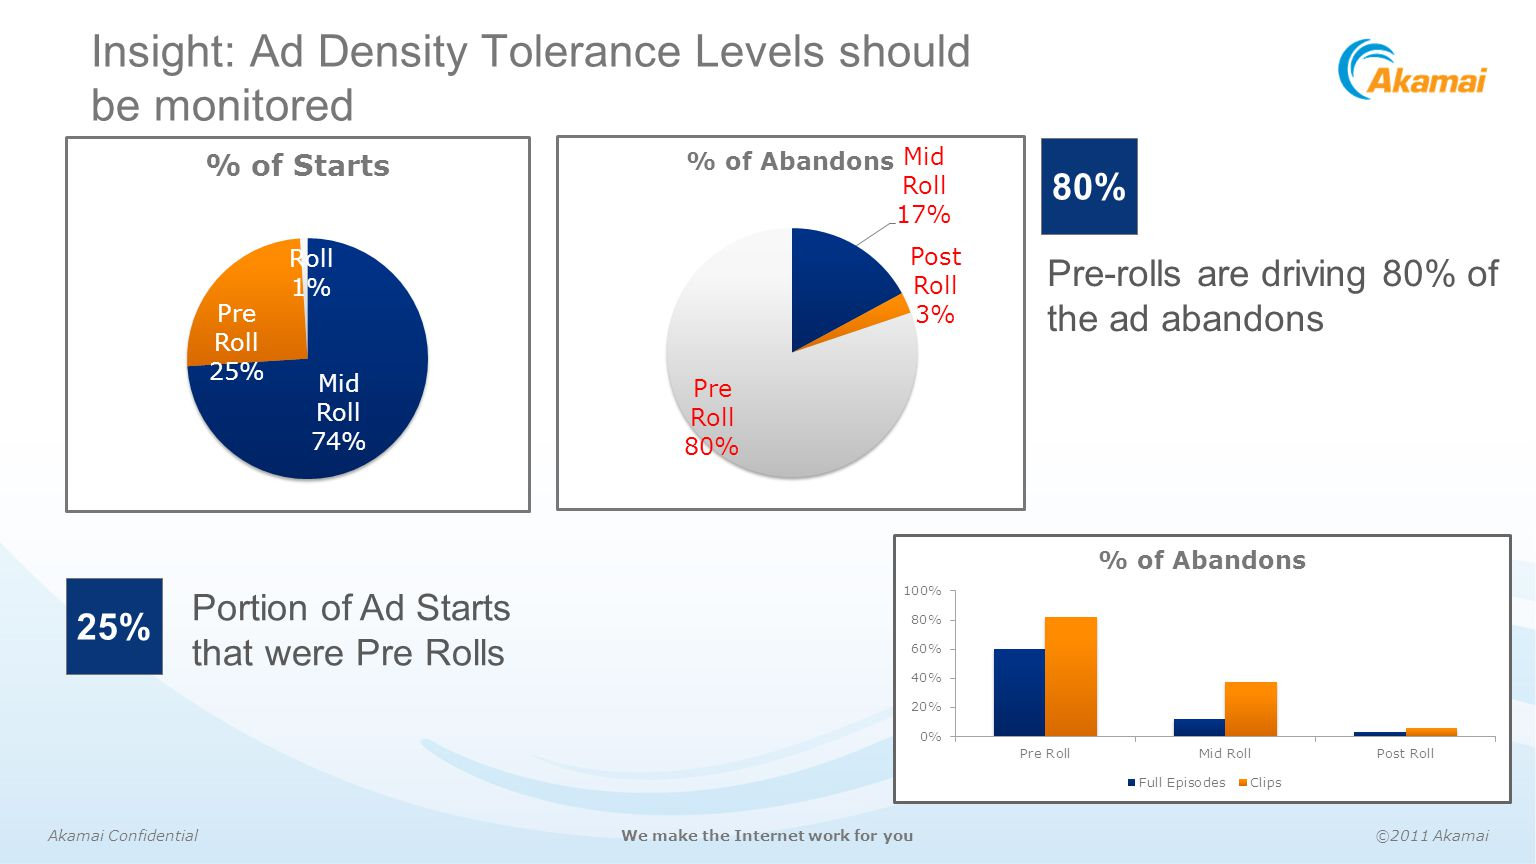 Insight: Ad Density Tolerance Levels should be monitored